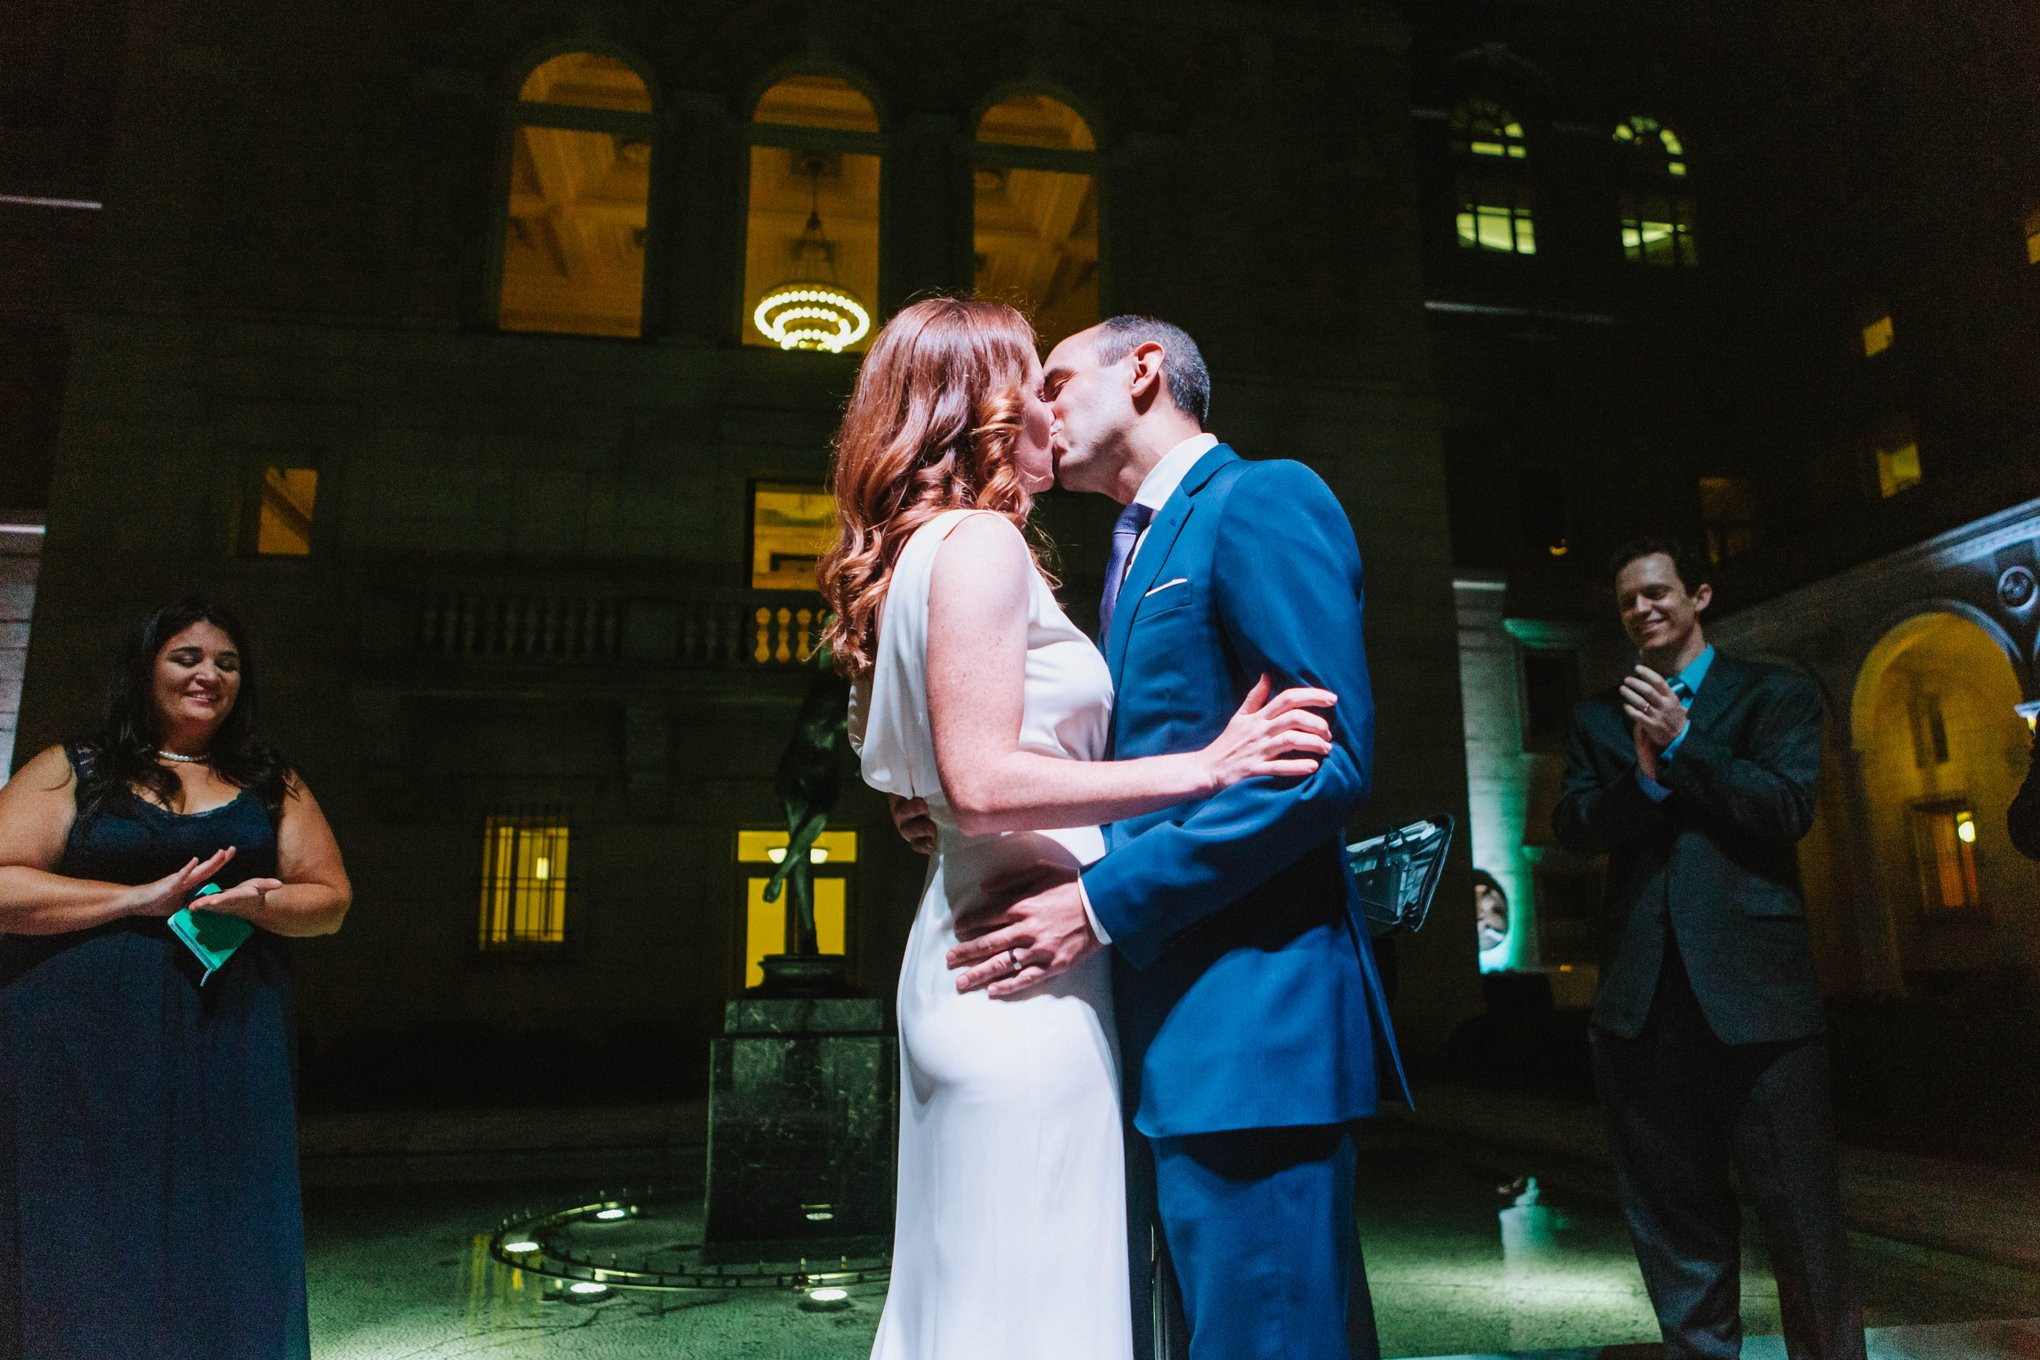 Boston_Public_Library_Wedding_26.jpg